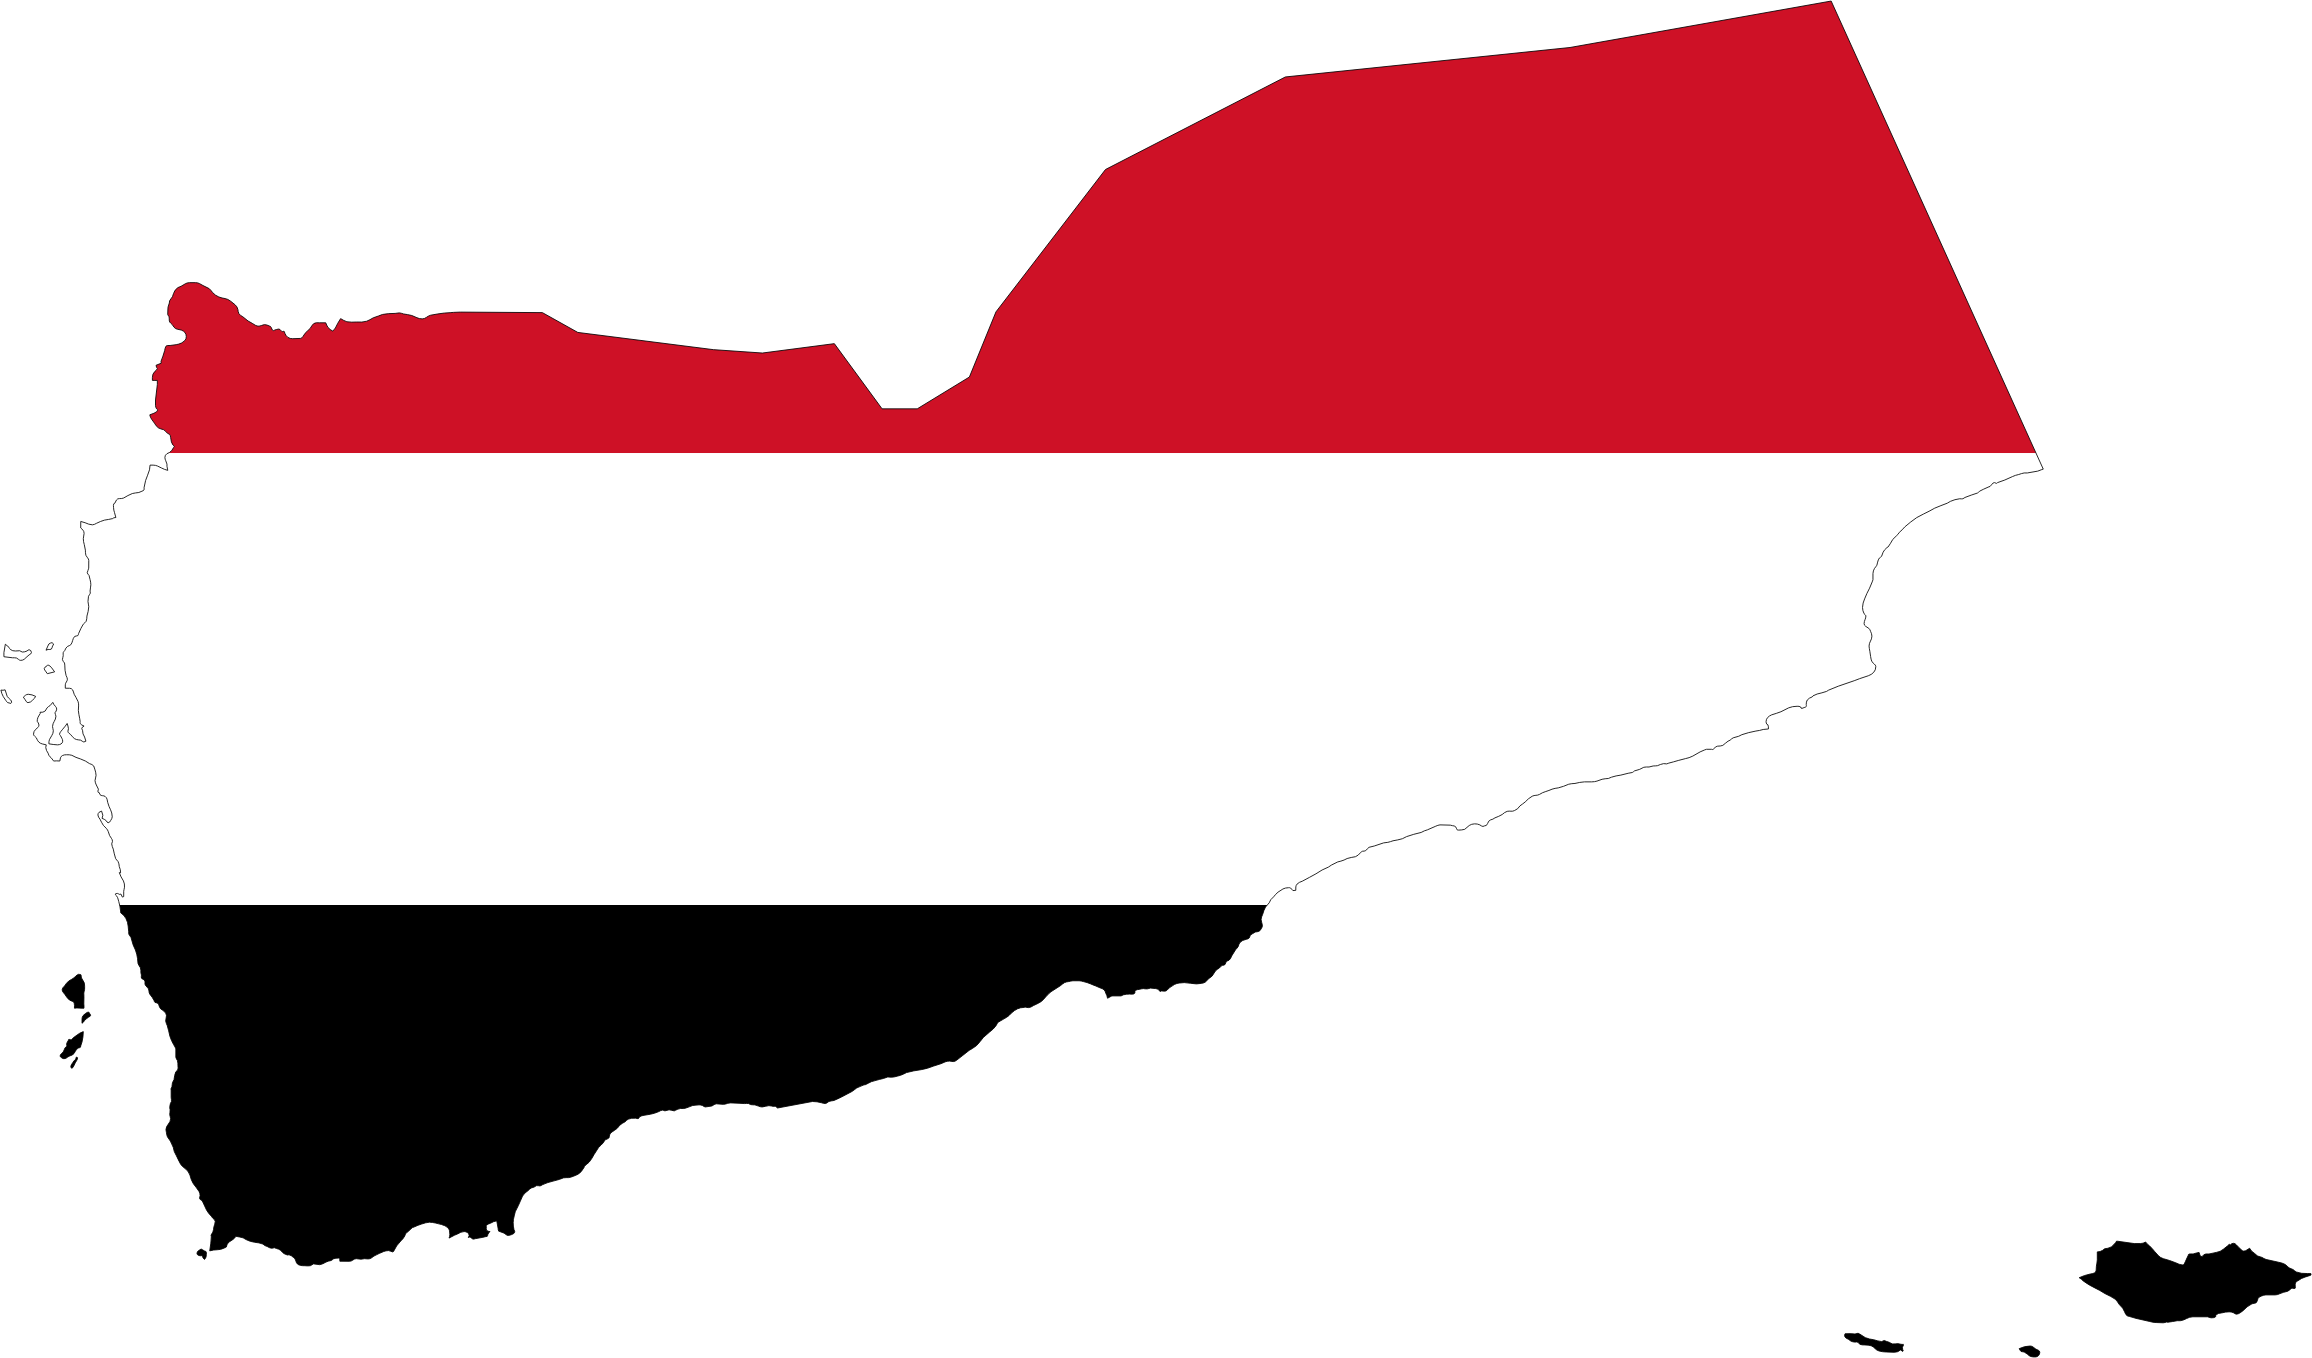 Yemen Map Flag With Stroke by GDJ